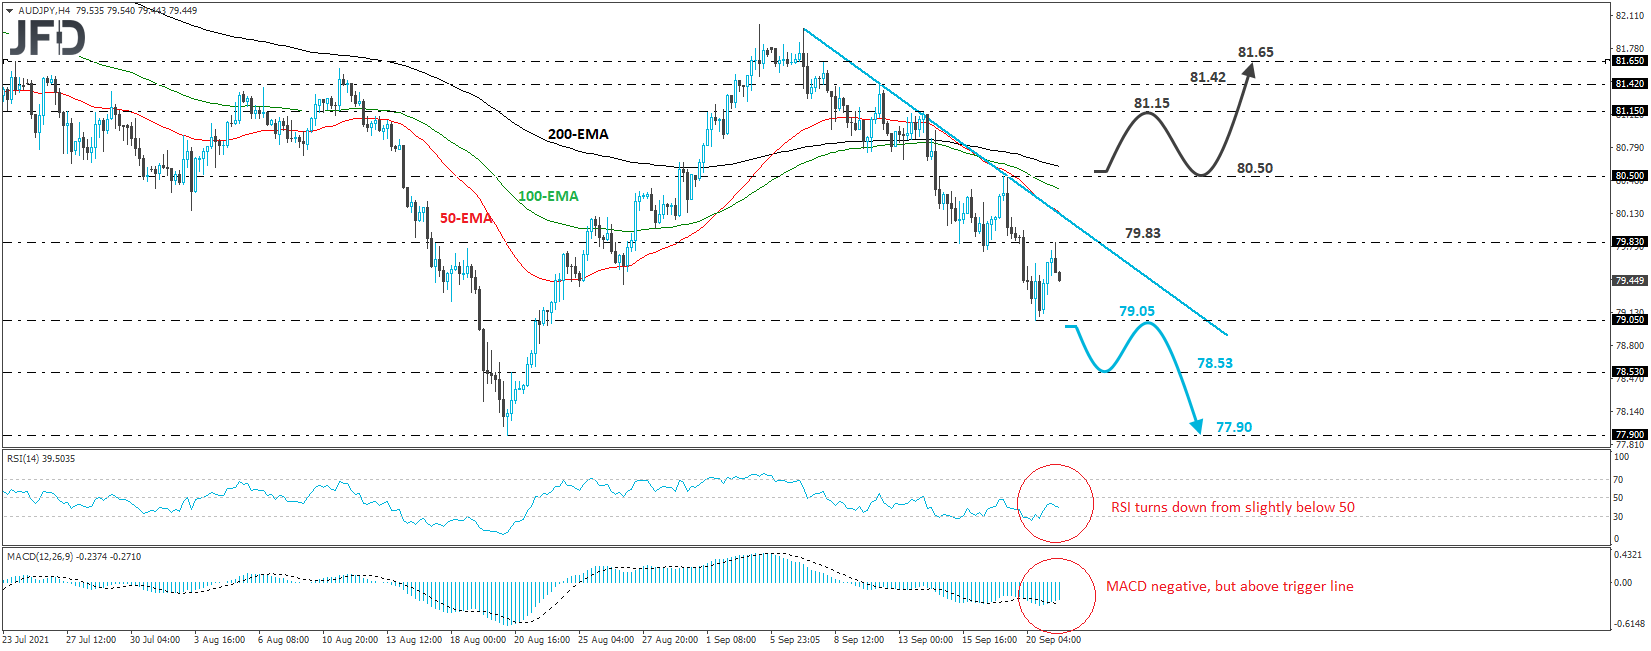 AUD/JPY Stays In A Downtrend Mode